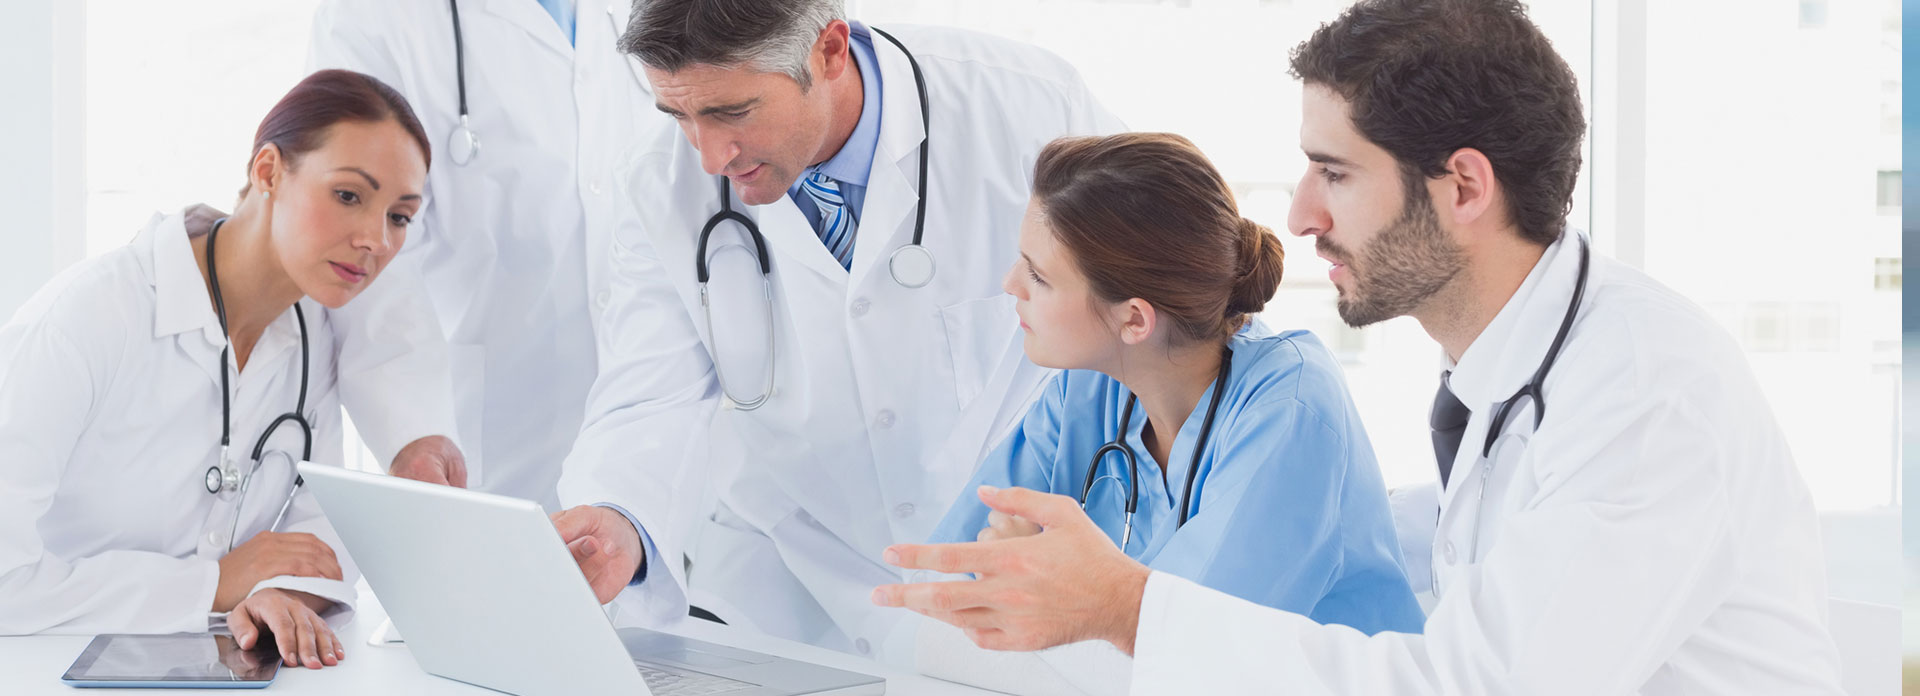 A team of doctors in a group discussion